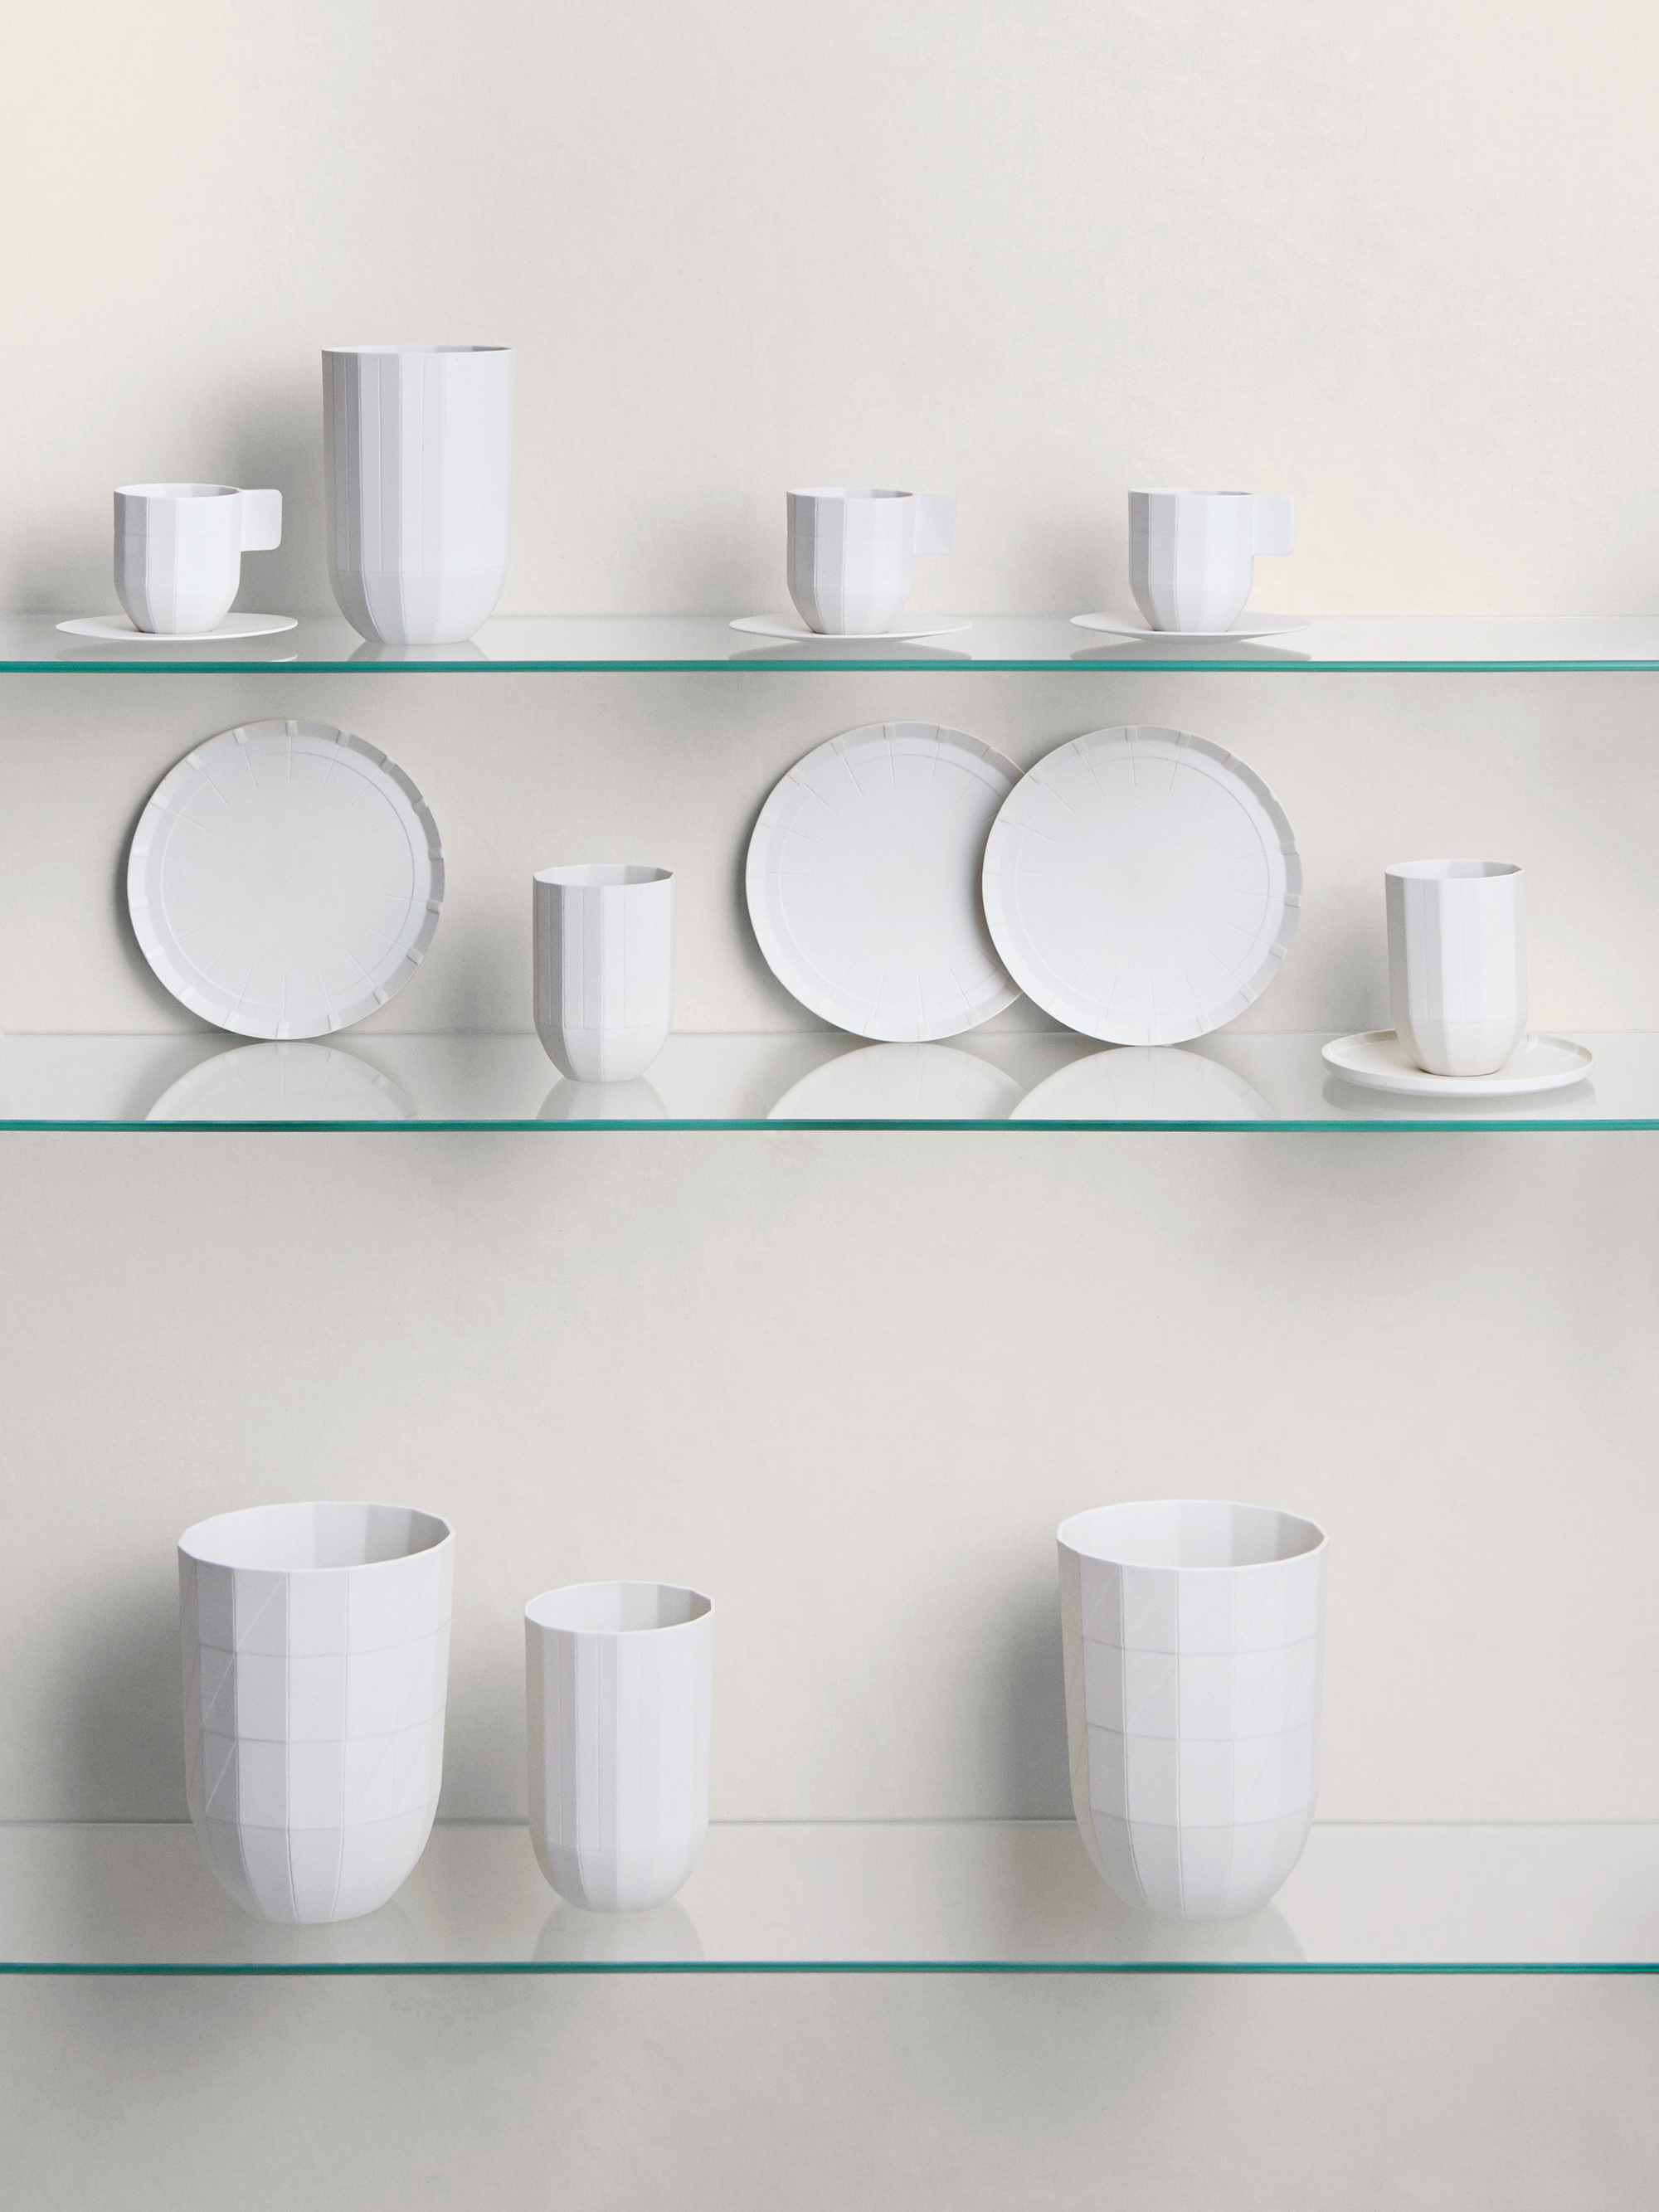 Paper porcelain by HAY, clean minimal styling